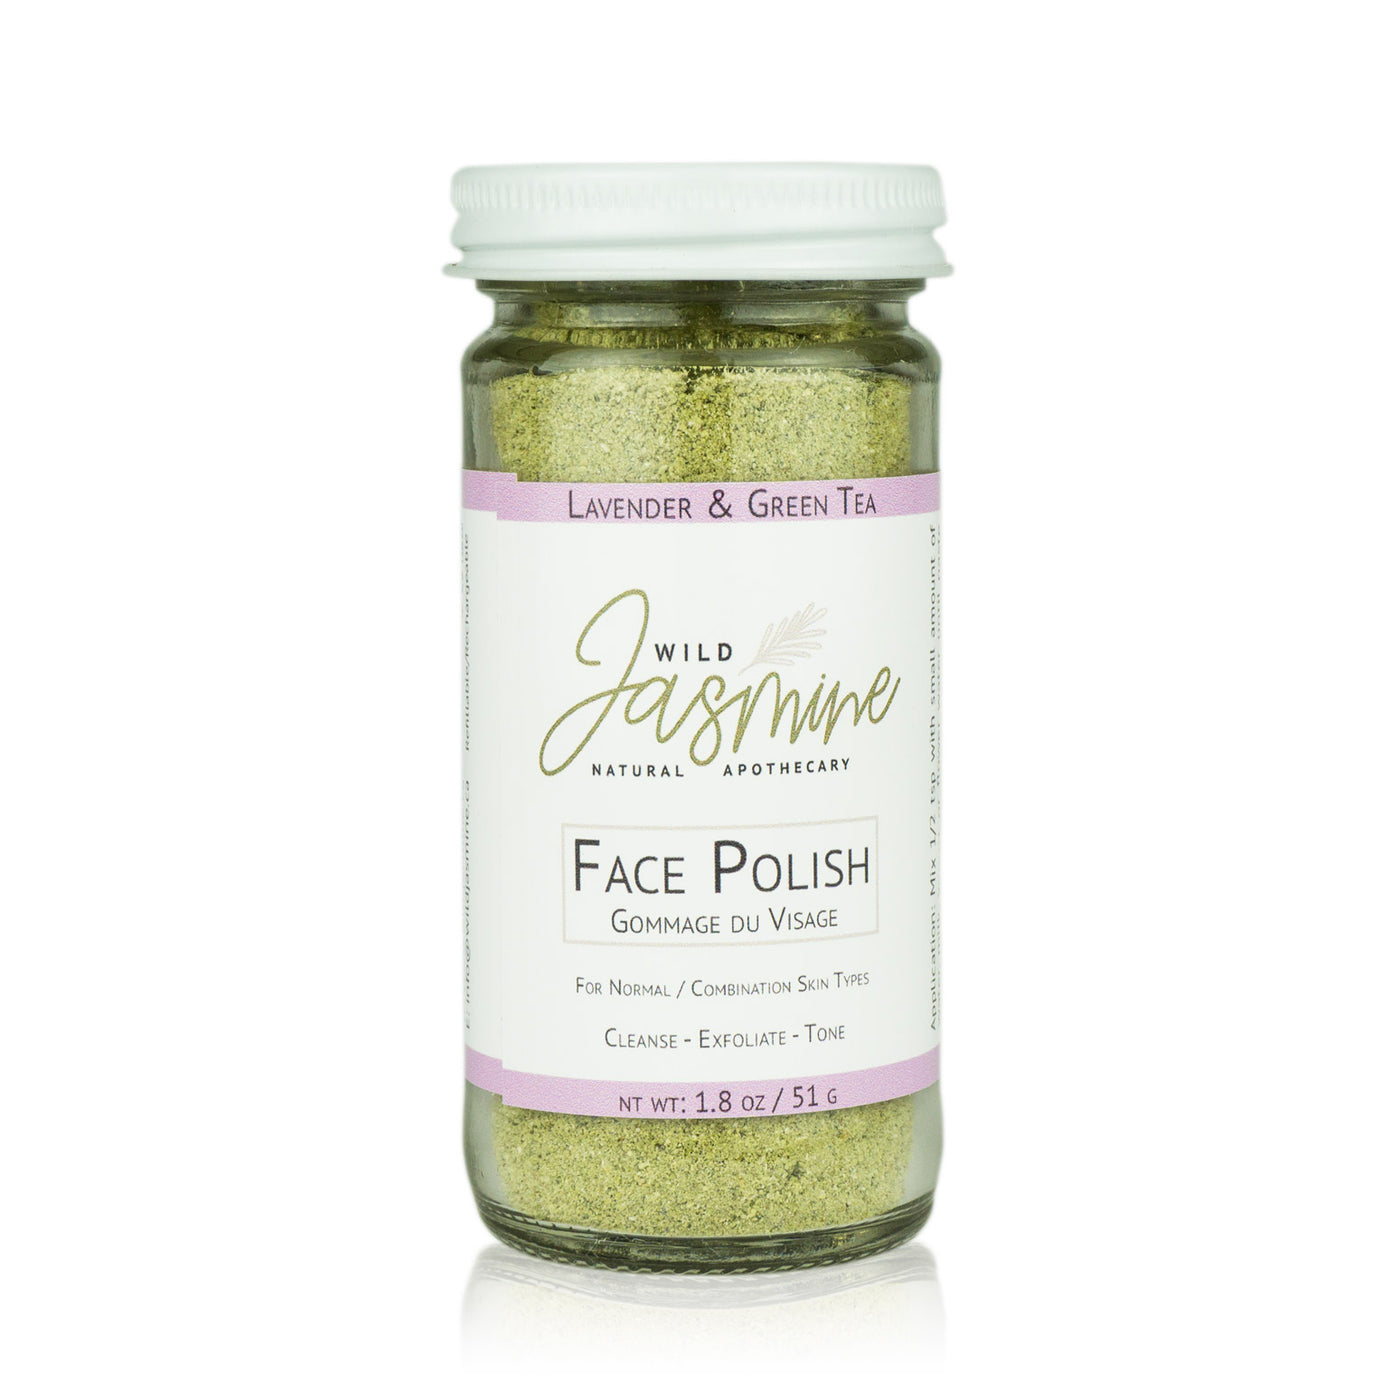 Face Polish - Lavender & Green Tea